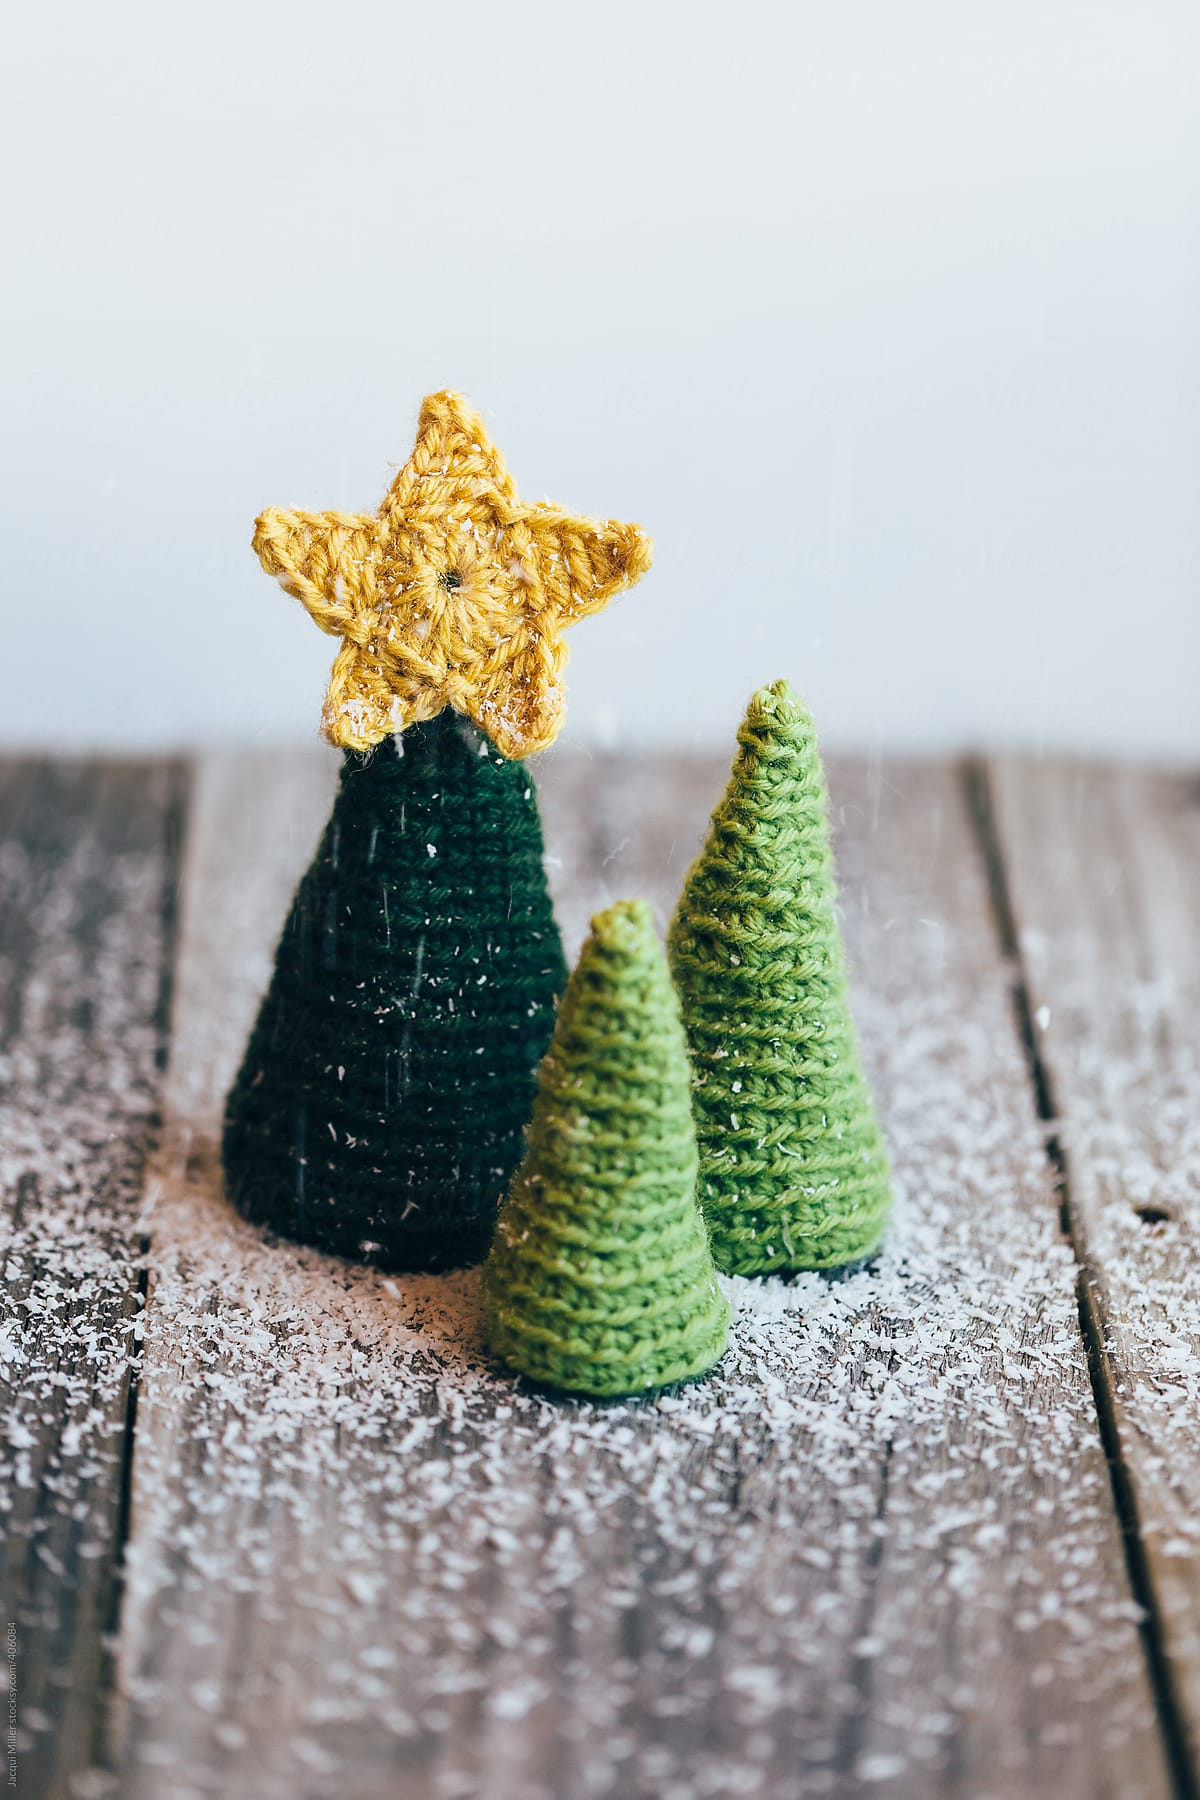 Three Little Crocheted Christmas Trees With Falling Artificial Snow On A Rustic Wooden Table By Jacqui Miller Christmas Xmas Stocksy United